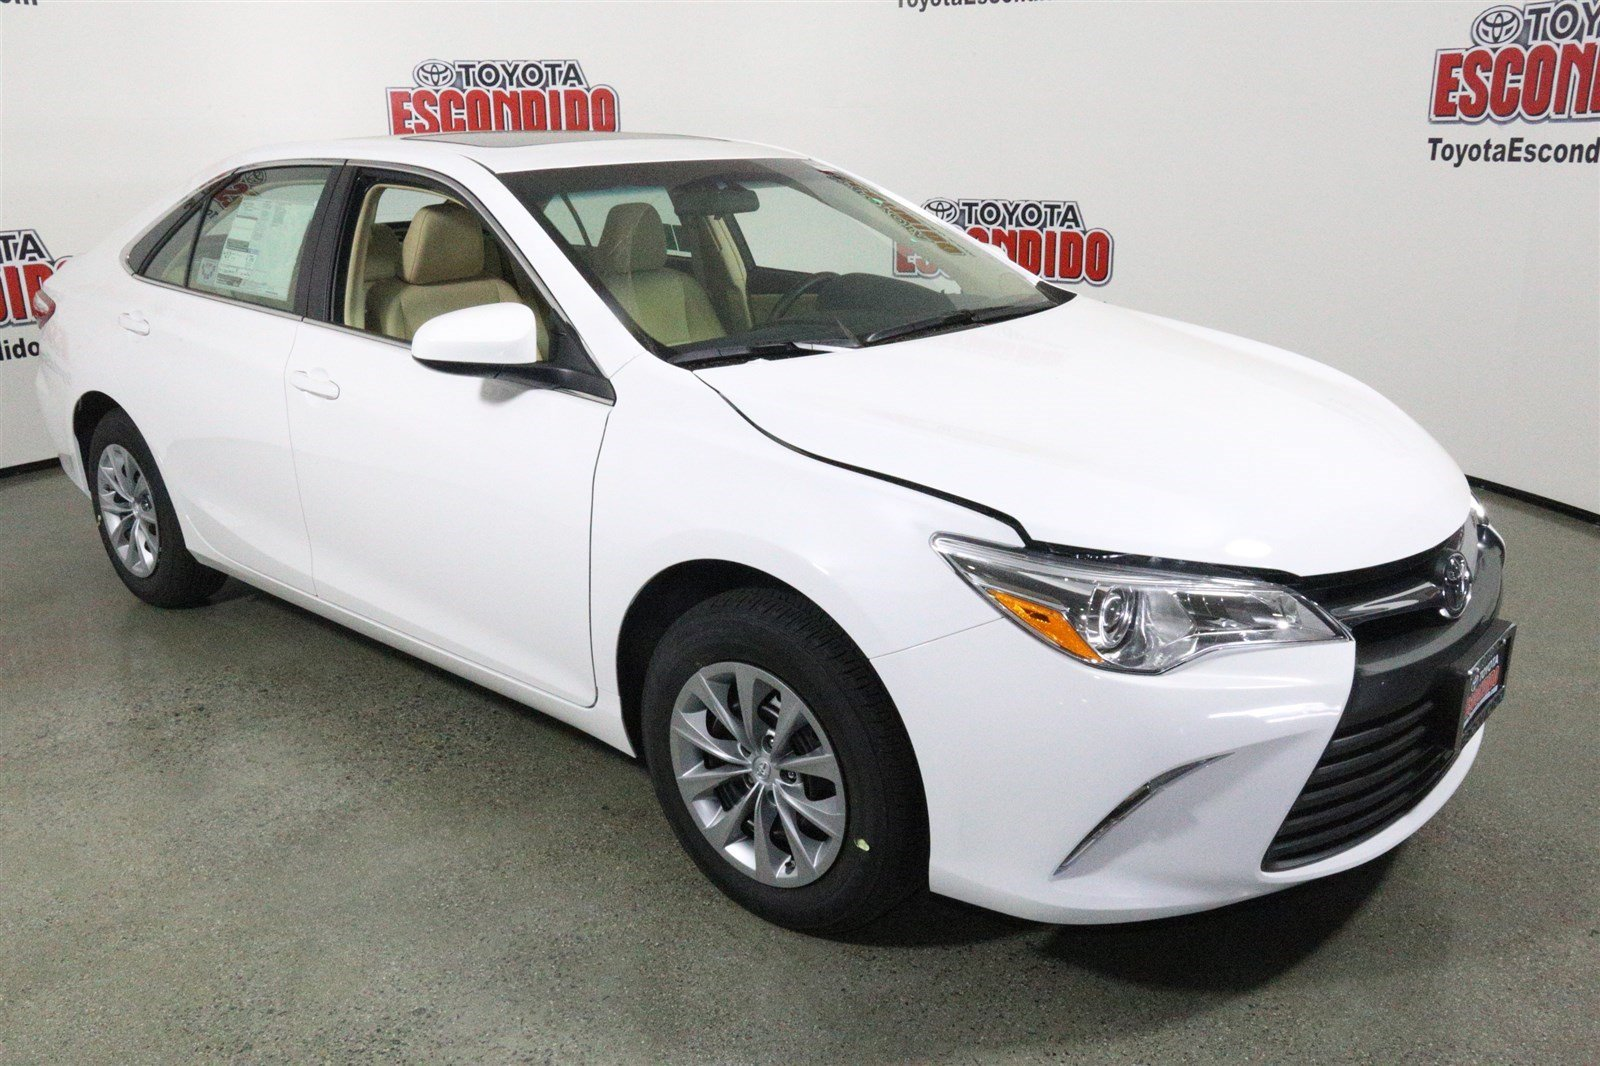 new 2017 toyota camry le 4dr car in escondido 1013080 toyota of escondido. Black Bedroom Furniture Sets. Home Design Ideas